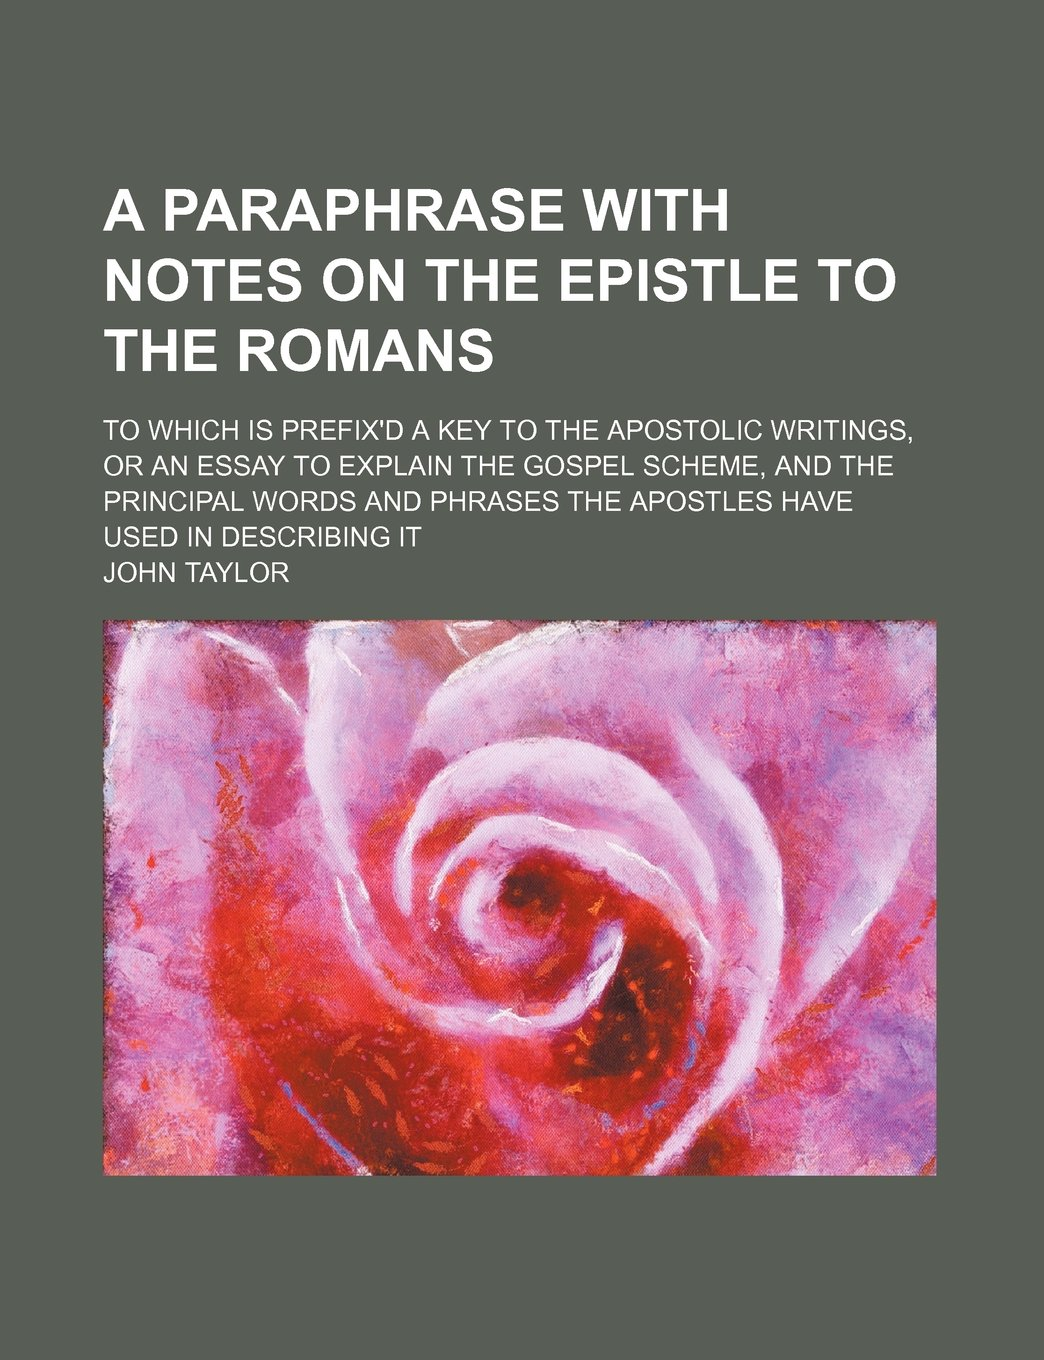 A Paraphrase With Notes On The Epistle To The Romans To Which Is  A Paraphrase With Notes On The Epistle To The Romans To Which Is Prefixd  A Key To The Apostolic Writings Or An Essay To Explain The Gospel Scheme   Argumentative Essay Proposal also Writing Lyrics Help  Persuasive Essay Examples High School